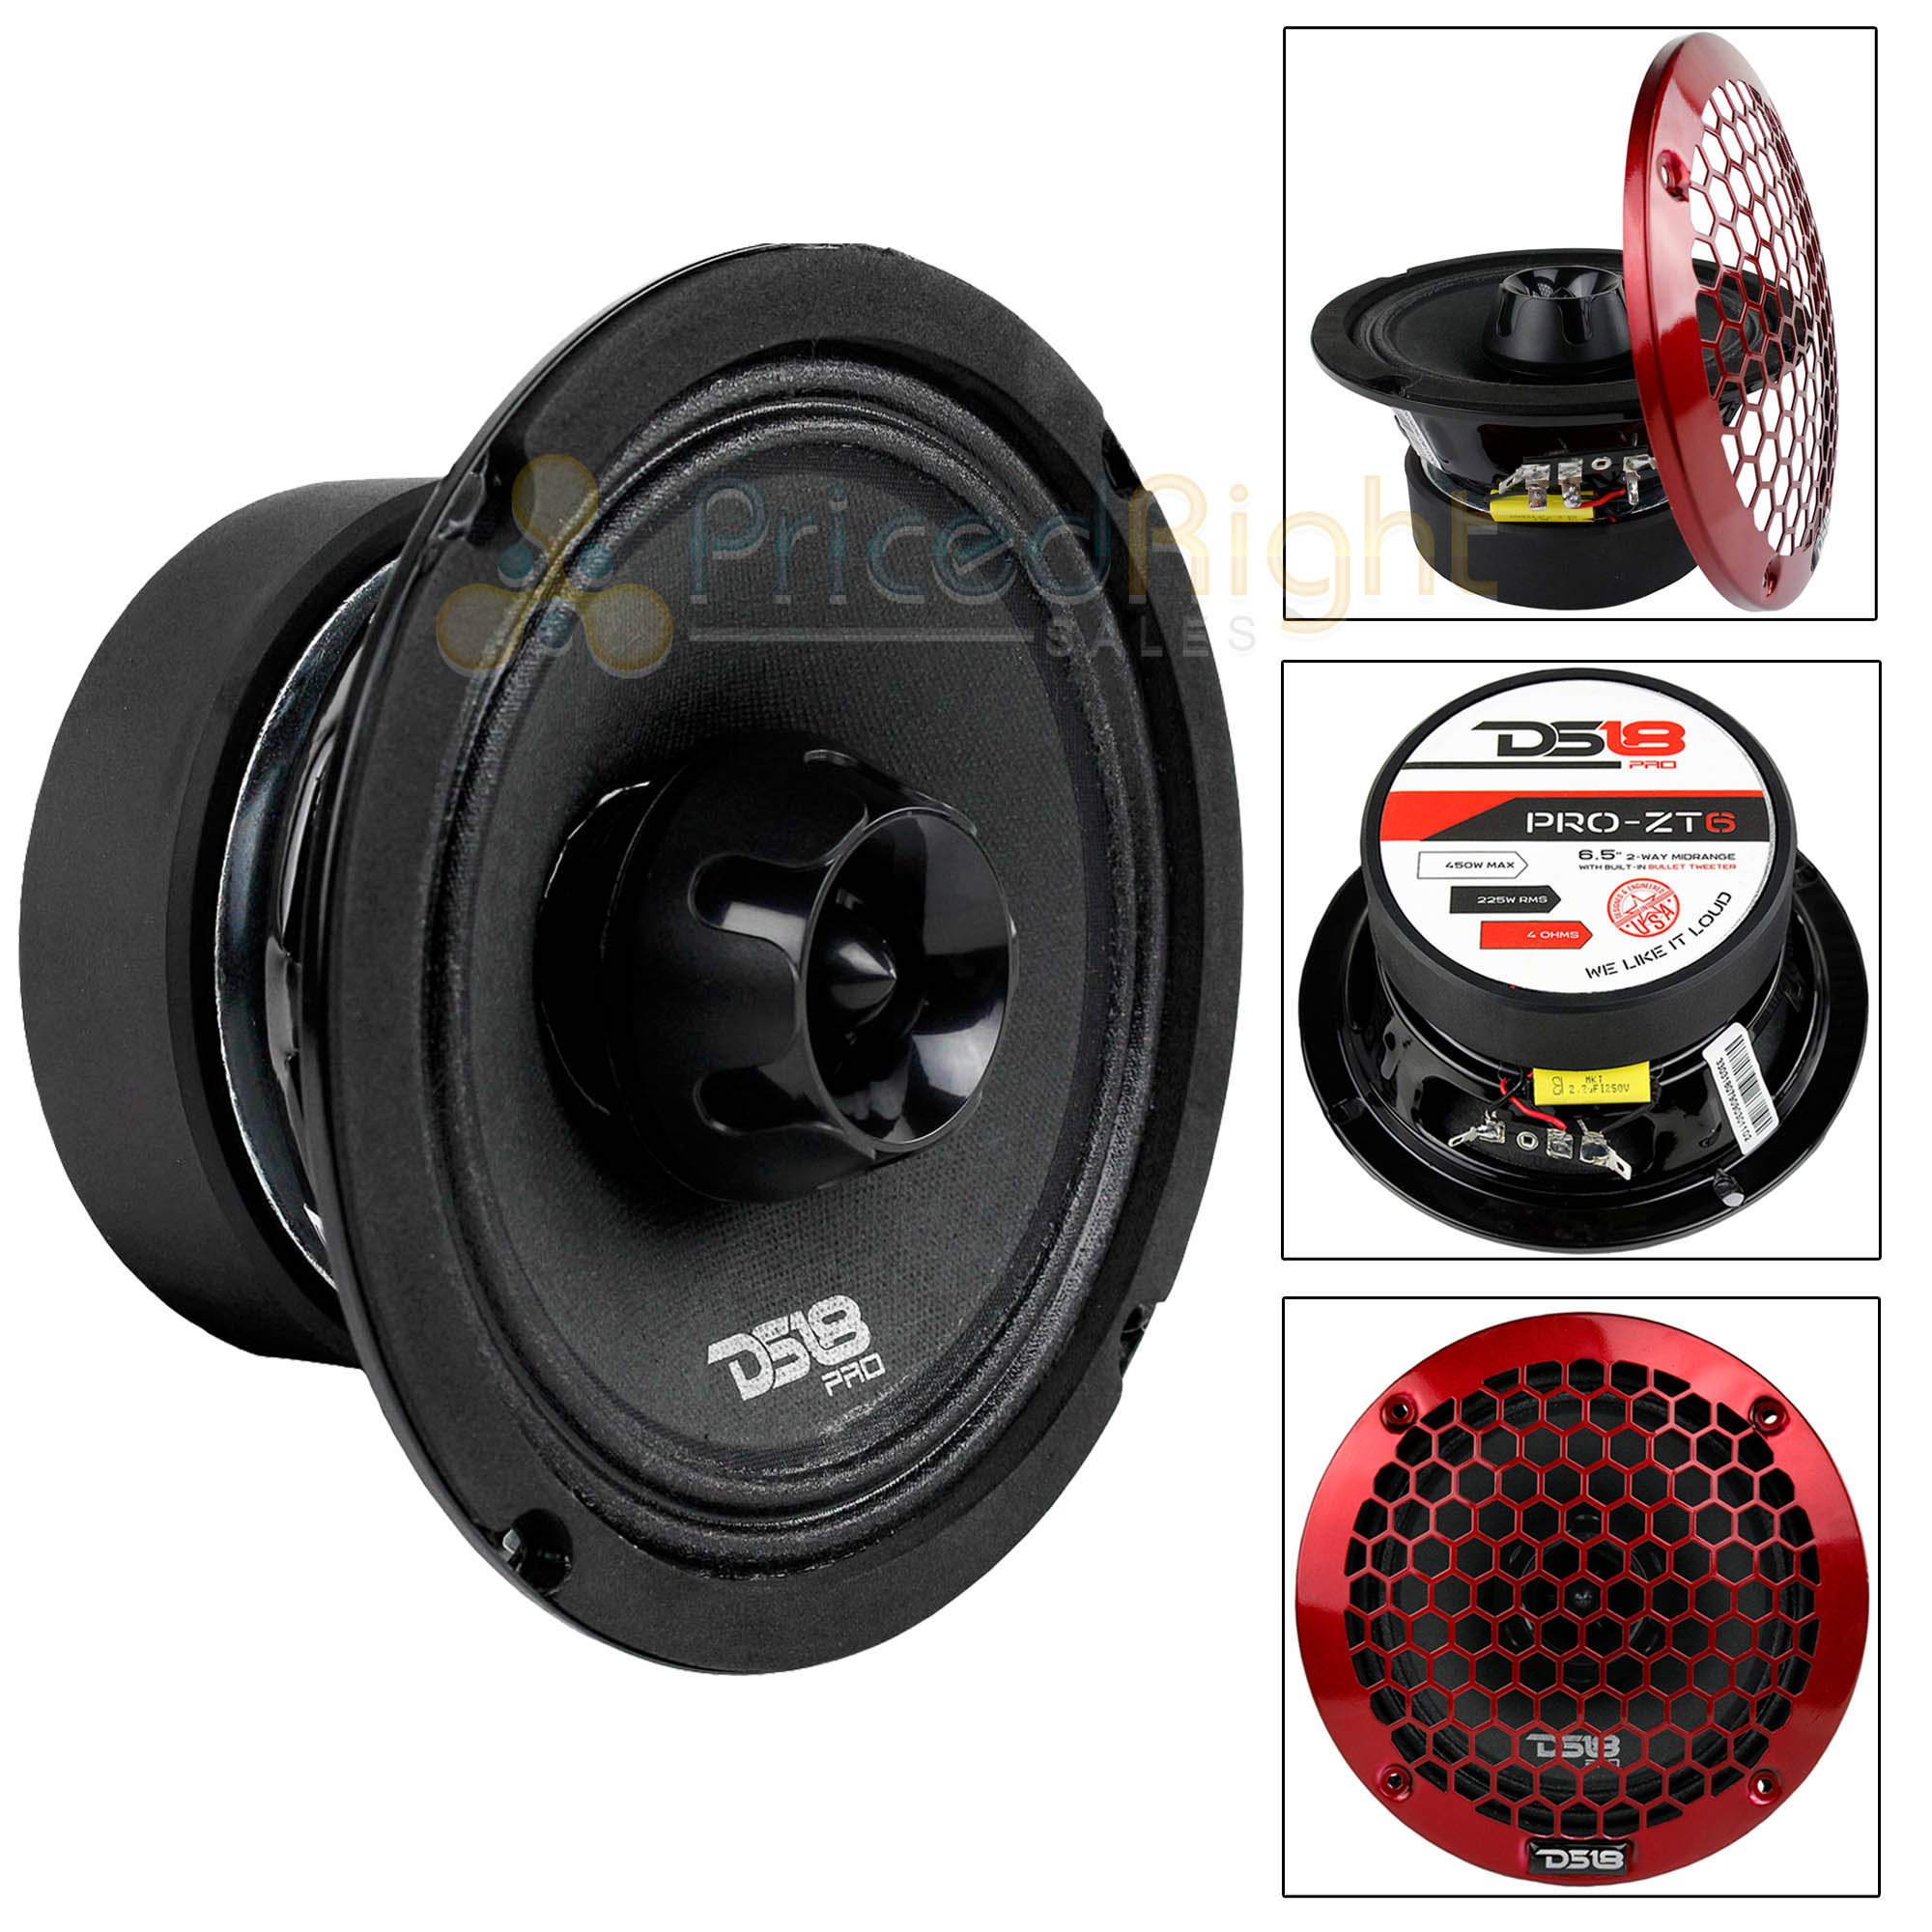 "6.5"" 2 Way Midrange Speaker Built In Tweeter 450 Watts Max 4 ohm DS18 PRO-ZT6"